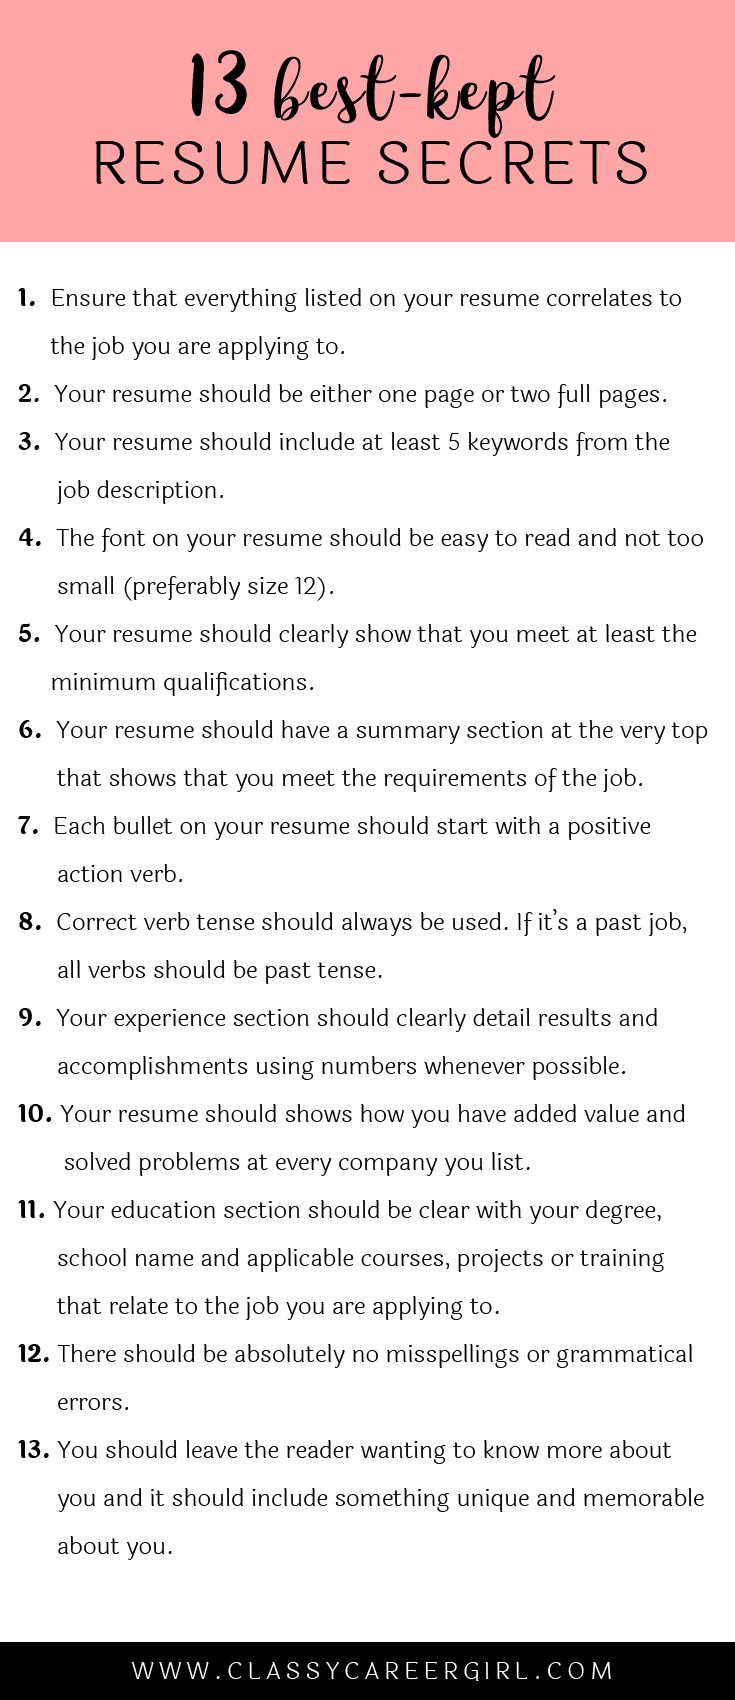 Opposenewapstandardsus  Pretty  Ideas About Resume On Pinterest  Cv Format Resume Cv And  With Goodlooking Some Hiring Managers Will Toss Your Resume Out If You Dont Know These  With Amusing How To List Software Skills On Resume Also Resume With Volunteer Experience In Addition The Best Resumes And Where To Print Resume As Well As Real Estate Resume Sample Additionally Resume For Kids From Pinterestcom With Opposenewapstandardsus  Goodlooking  Ideas About Resume On Pinterest  Cv Format Resume Cv And  With Amusing Some Hiring Managers Will Toss Your Resume Out If You Dont Know These  And Pretty How To List Software Skills On Resume Also Resume With Volunteer Experience In Addition The Best Resumes From Pinterestcom